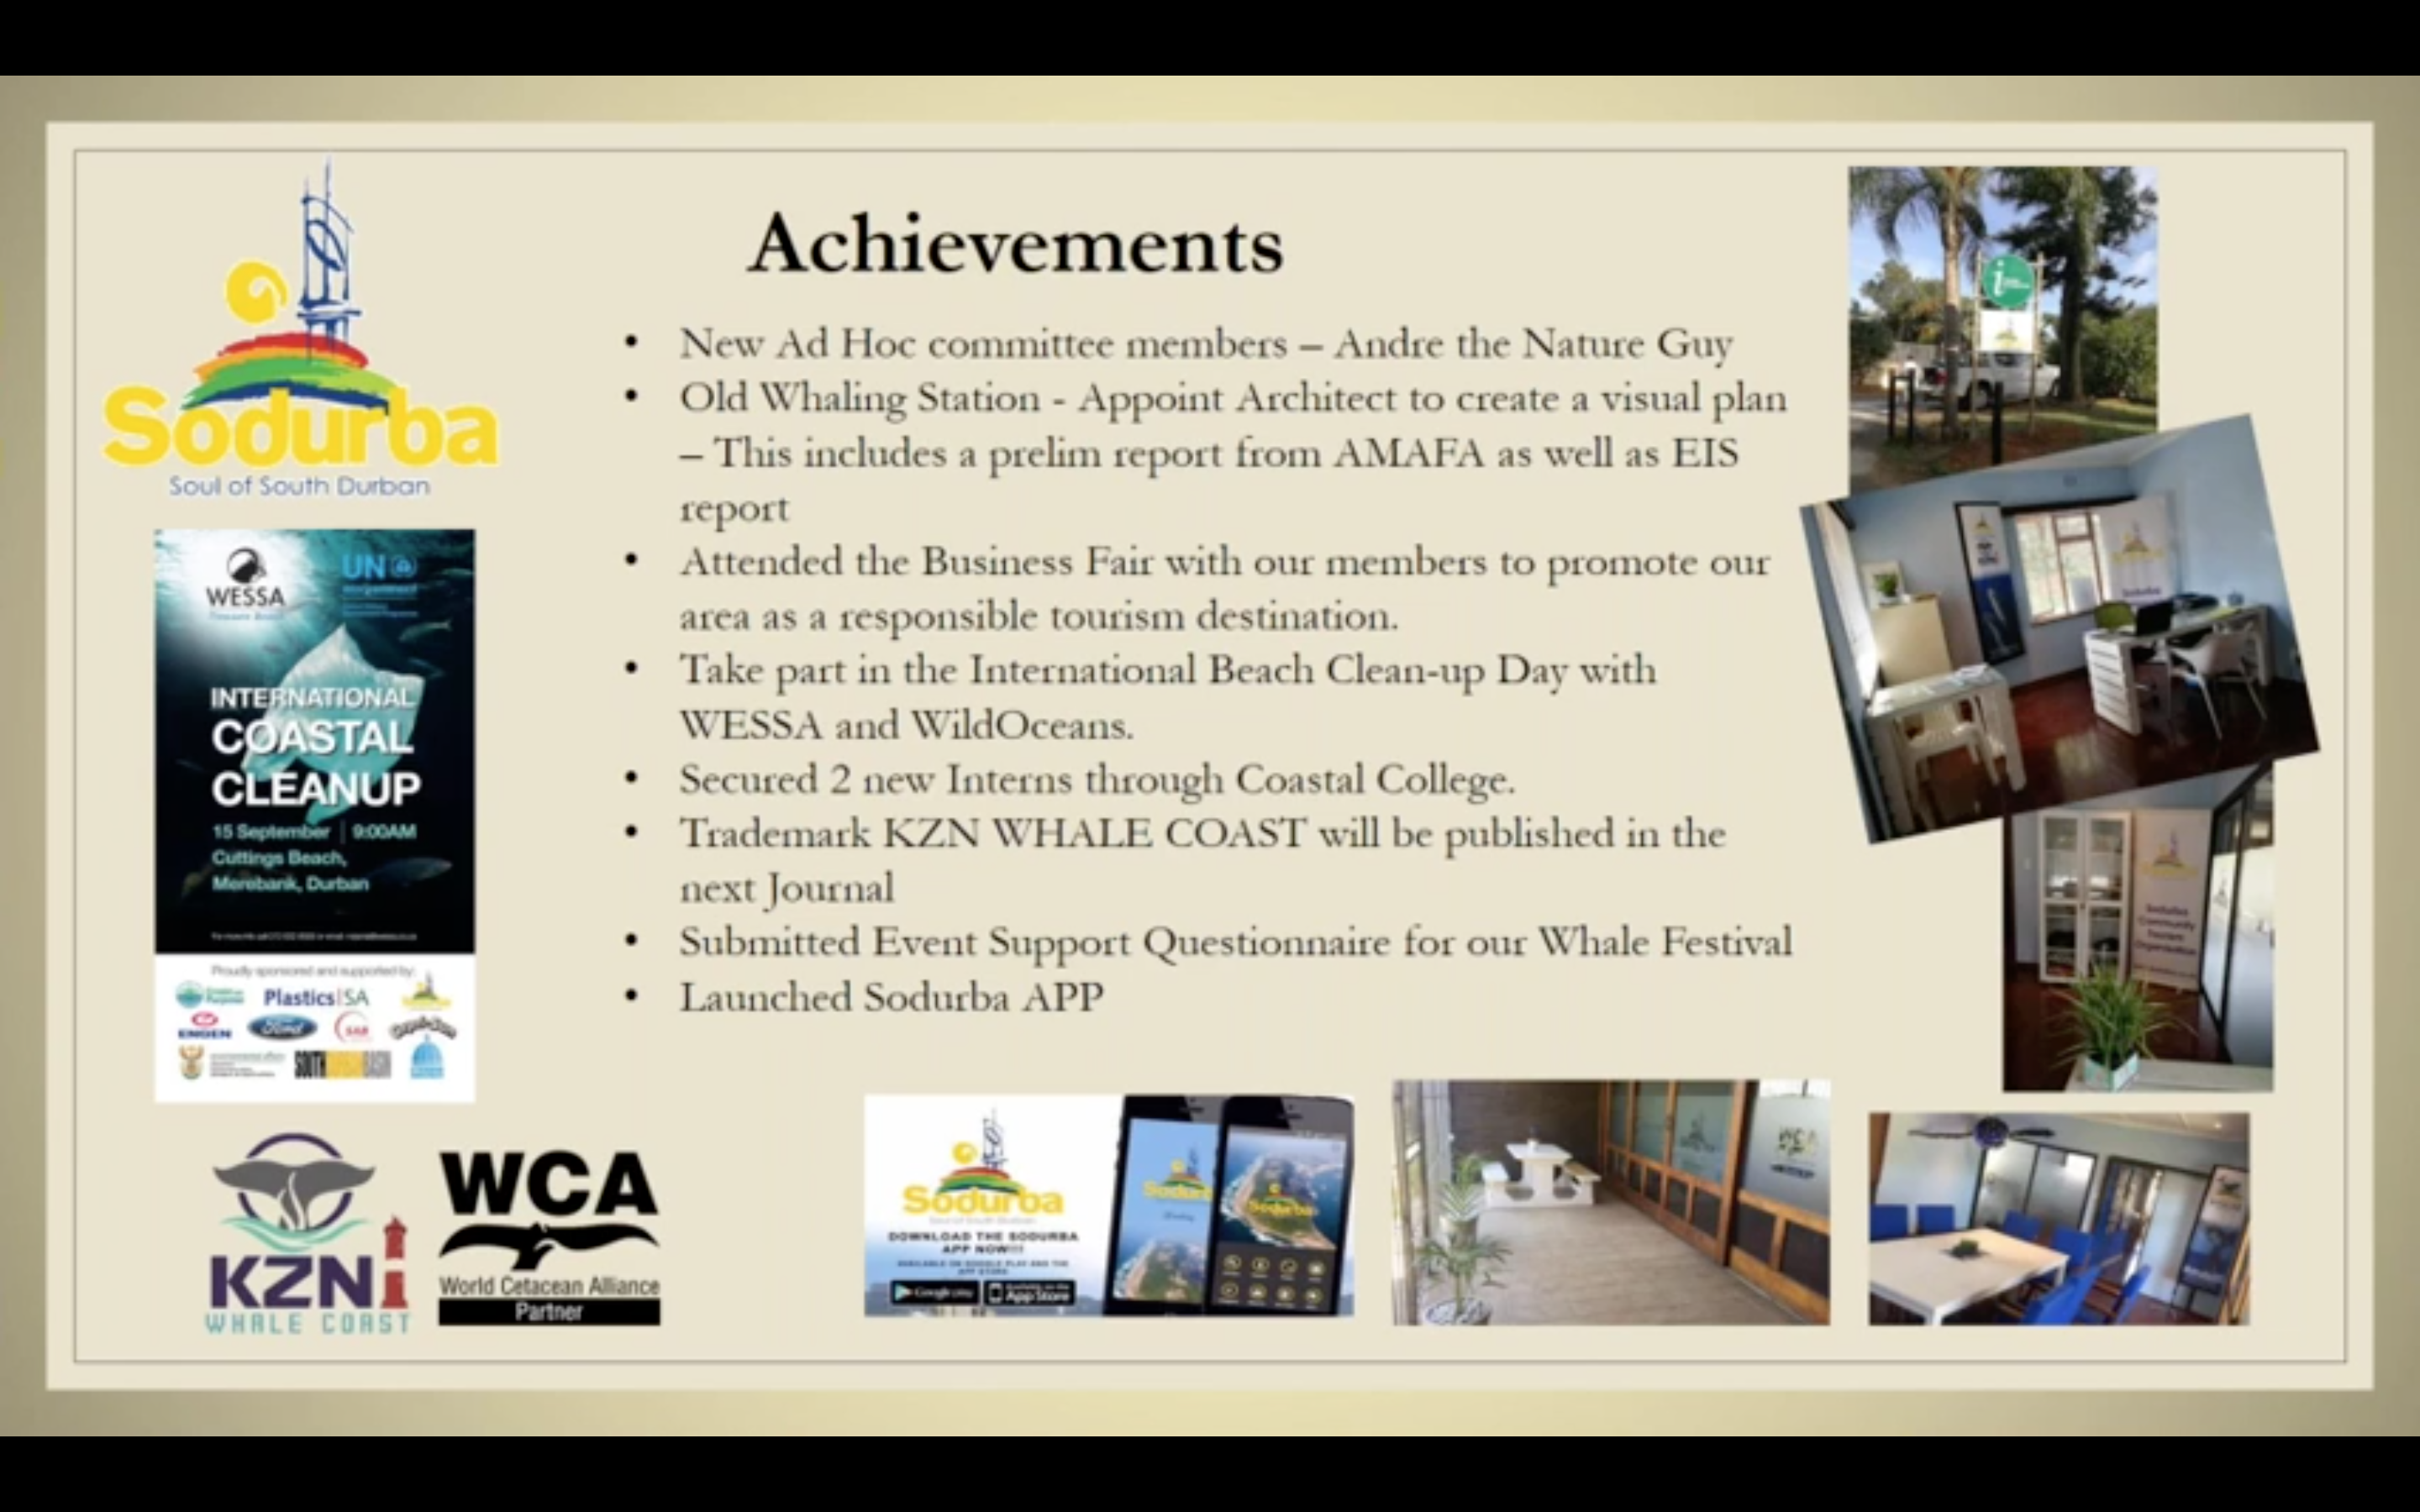 WCA Partner Sodurba summarise some of their main achievements during their Focus Day Webinar